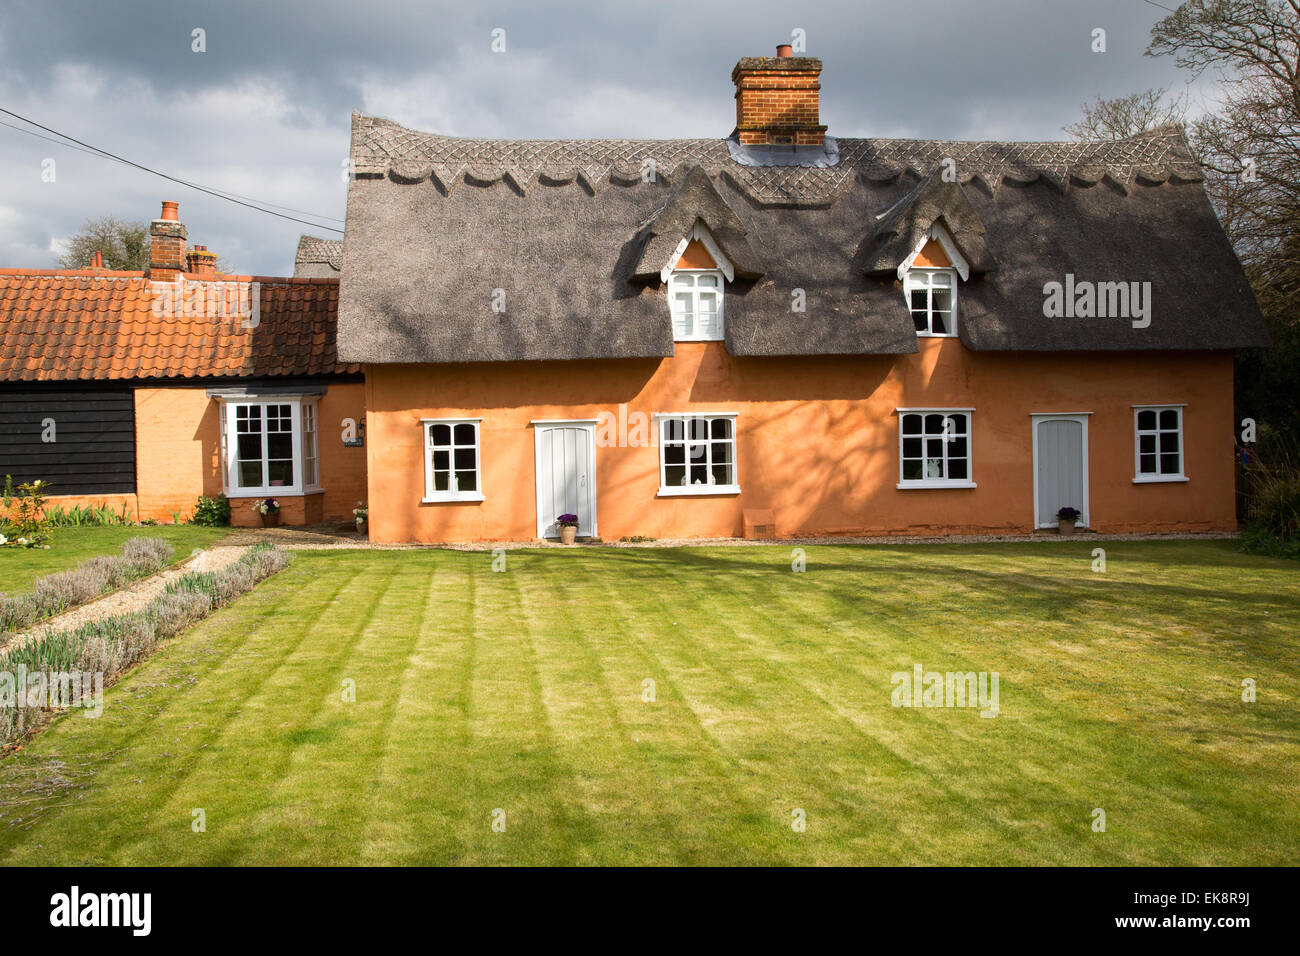 Classic picturesque orange thatched country cottage in rural England with a lawn - Stock Image